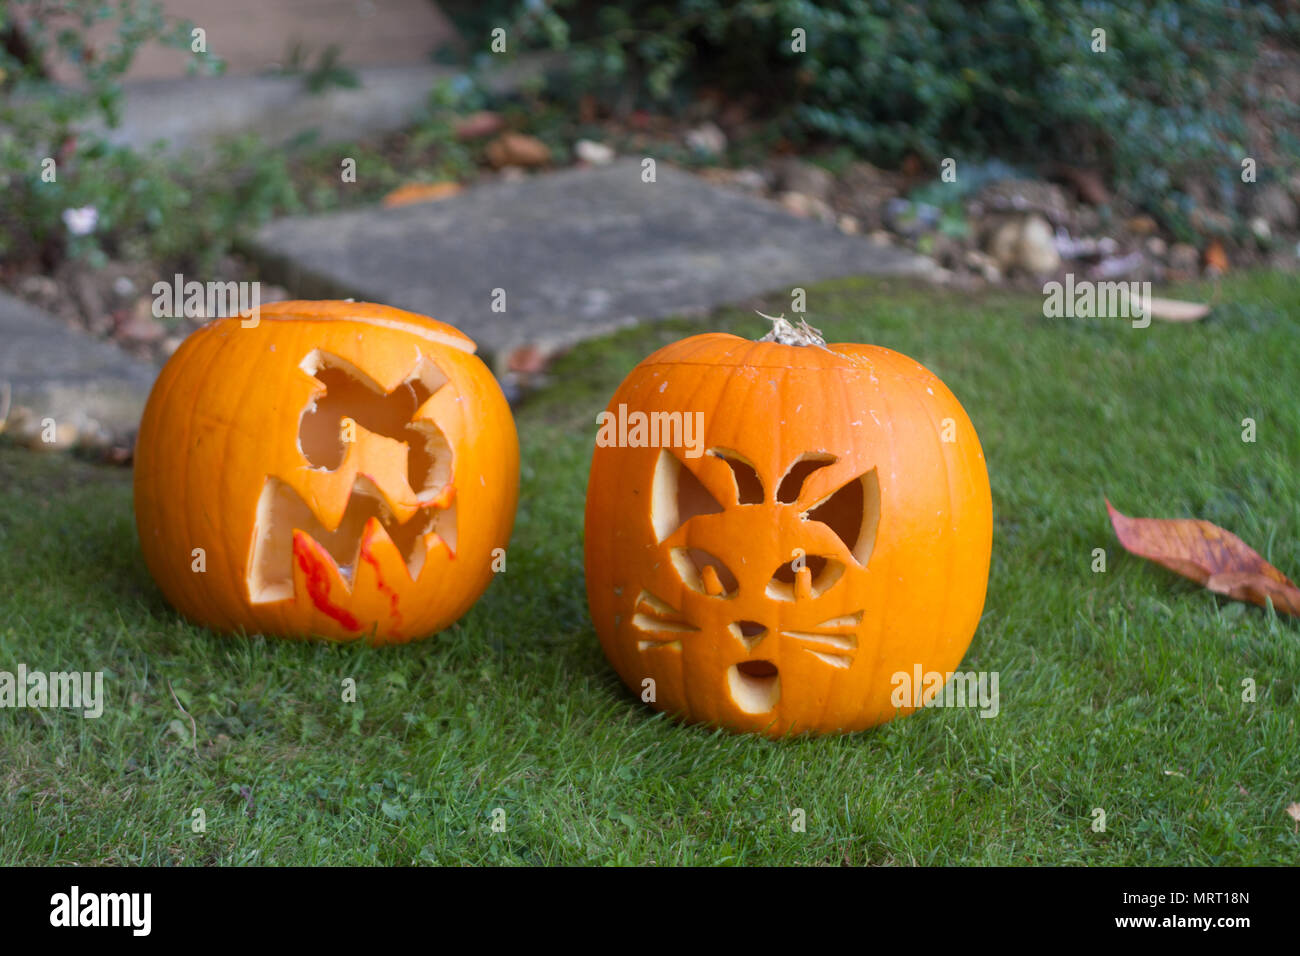 Halloween Pumpkins out on the lawn before a house cut into a bloody grimace and a cat's face - Stock Image